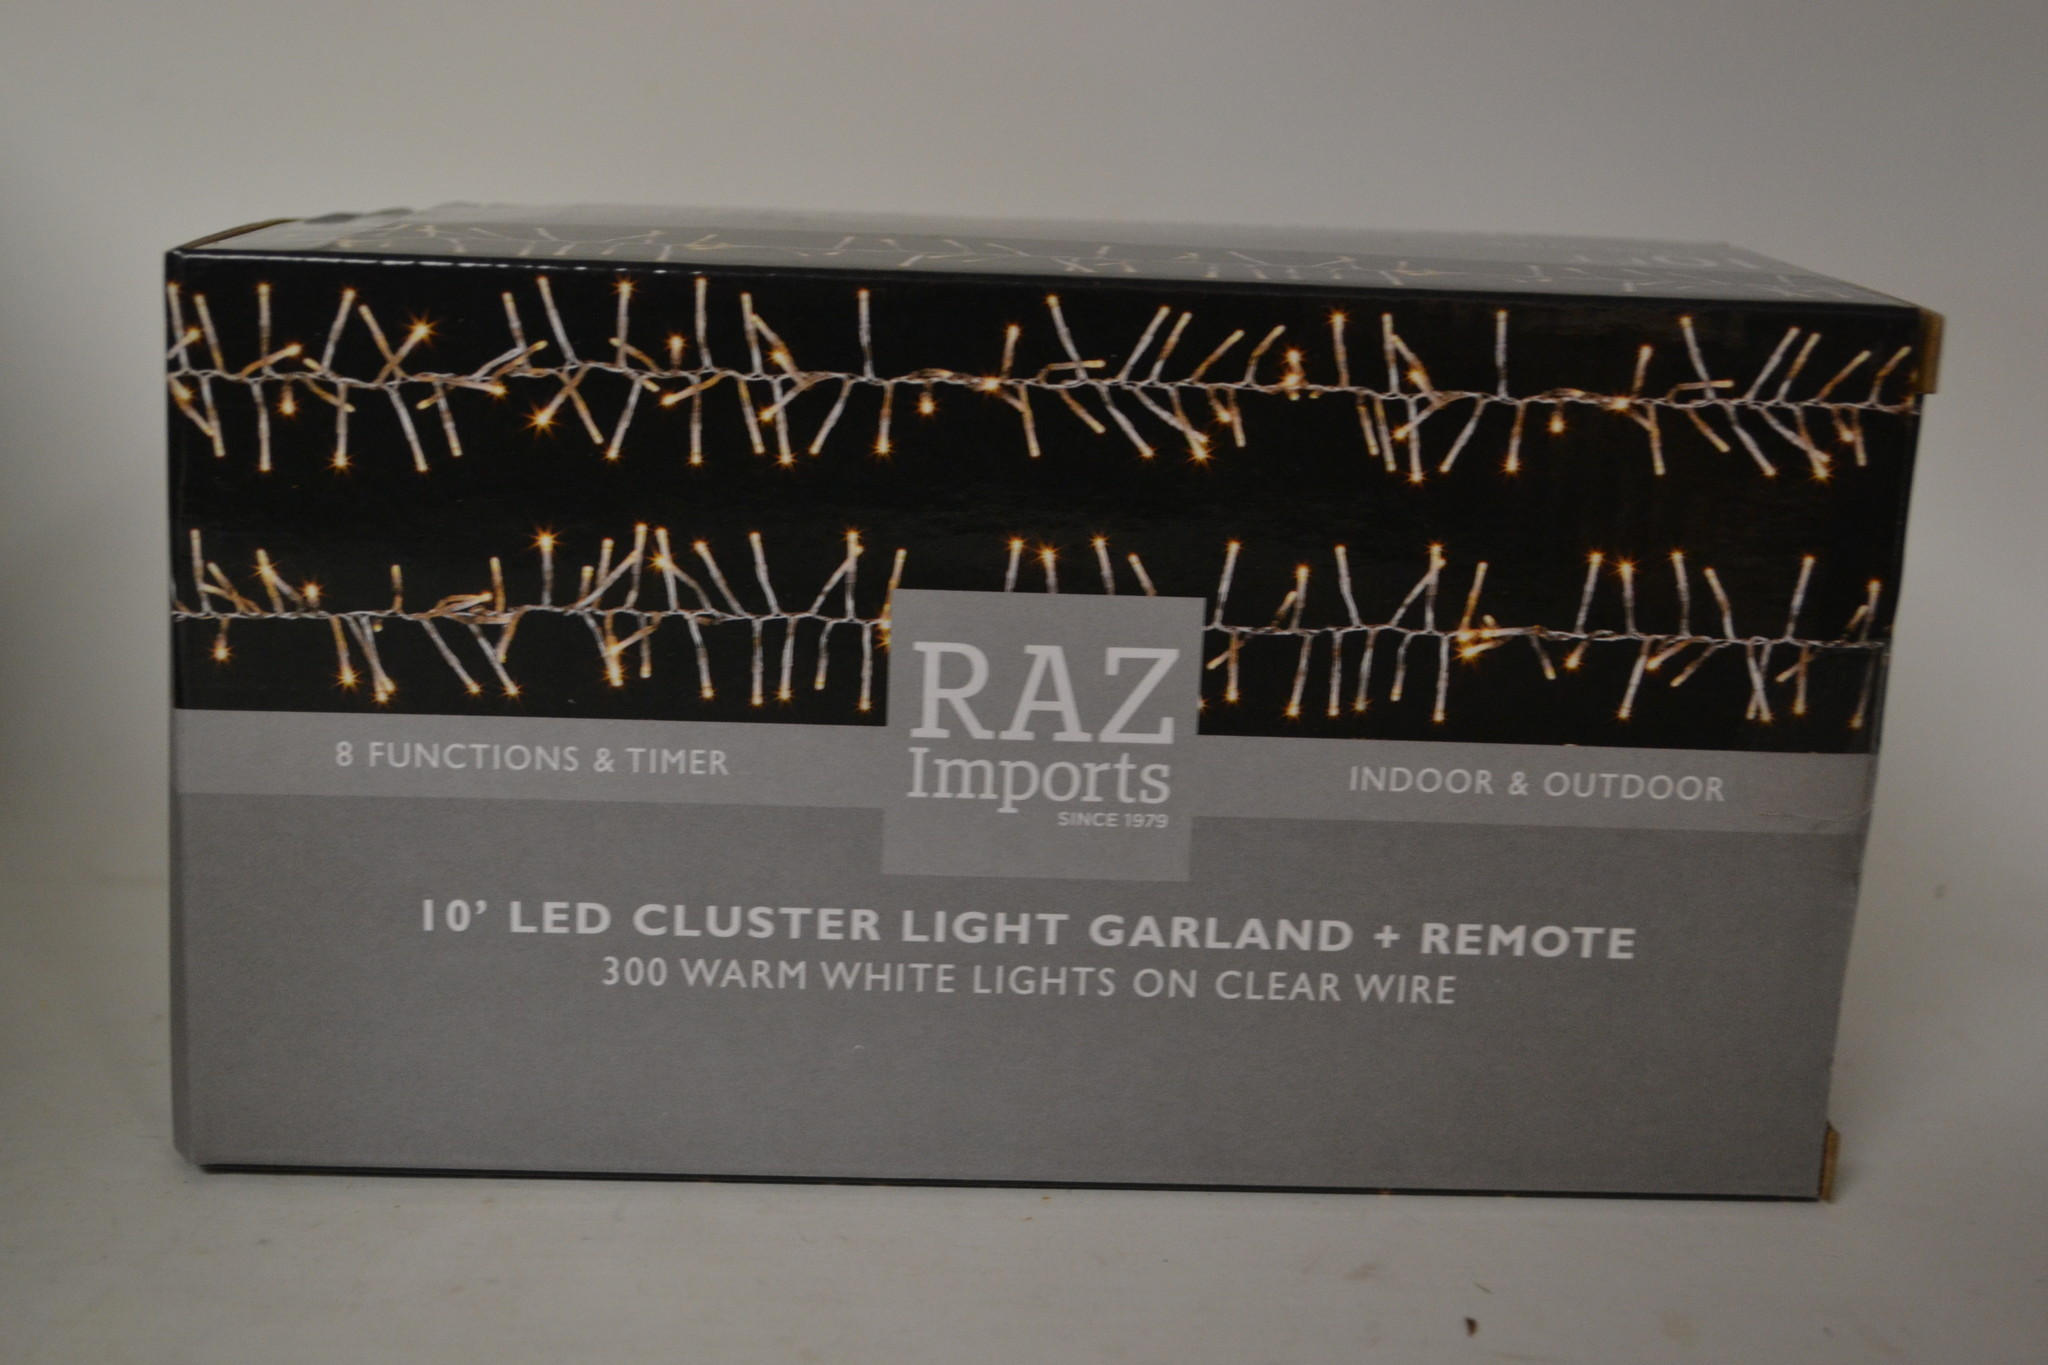 10' Clear Wire Cluster Mantle 300 White Lights w/ Remote